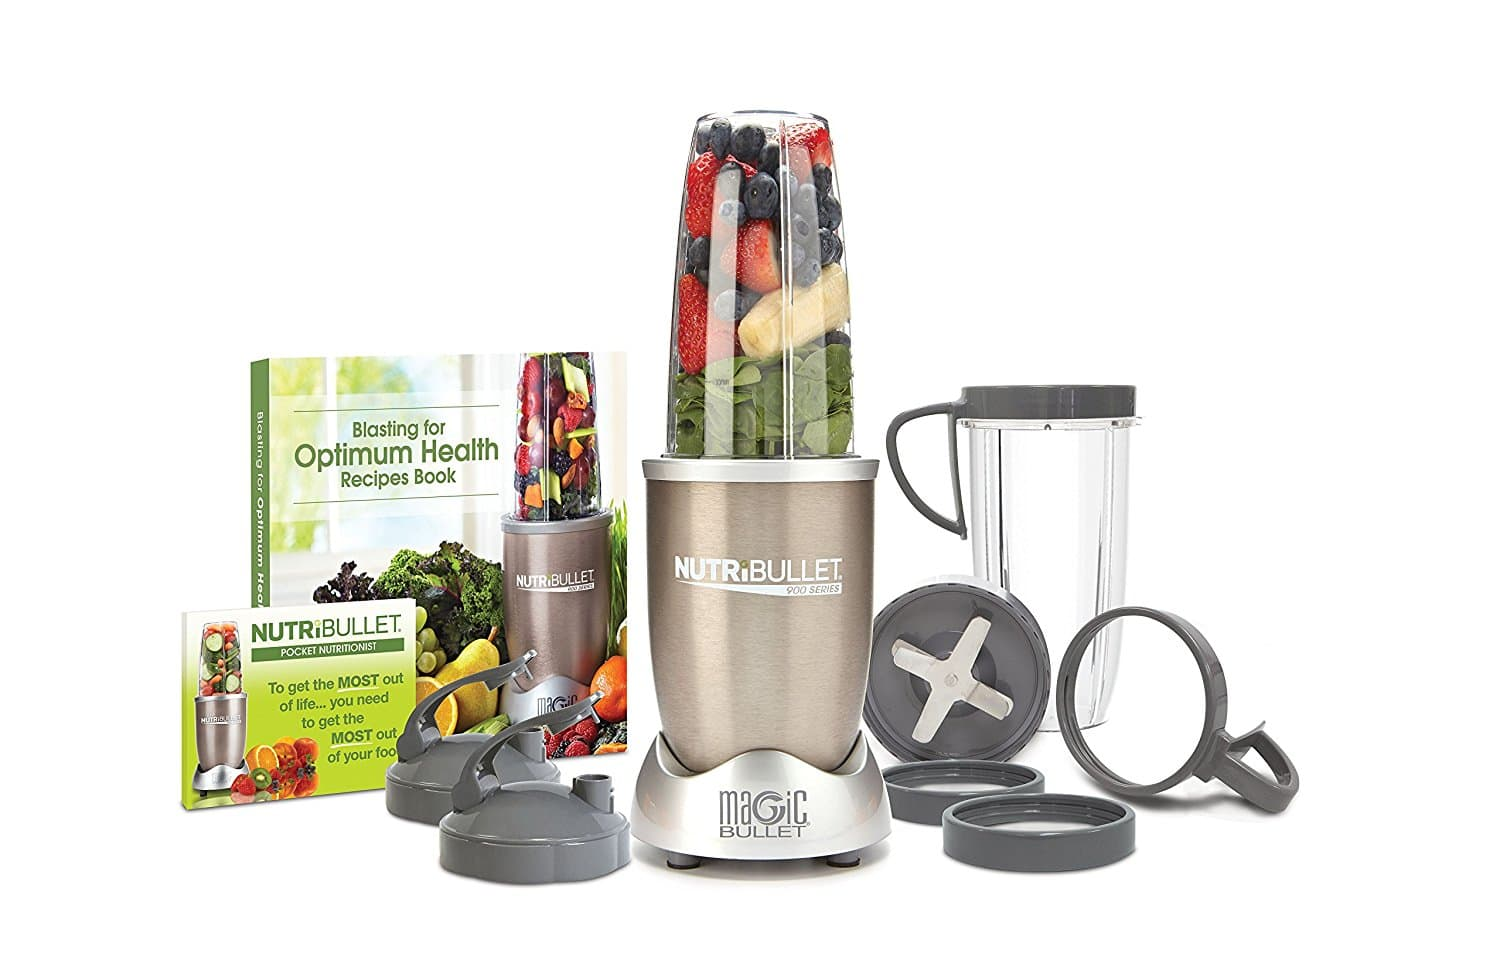 Amazon Treasure Truck - NutriBullet Pro Blender 30% off $69.99